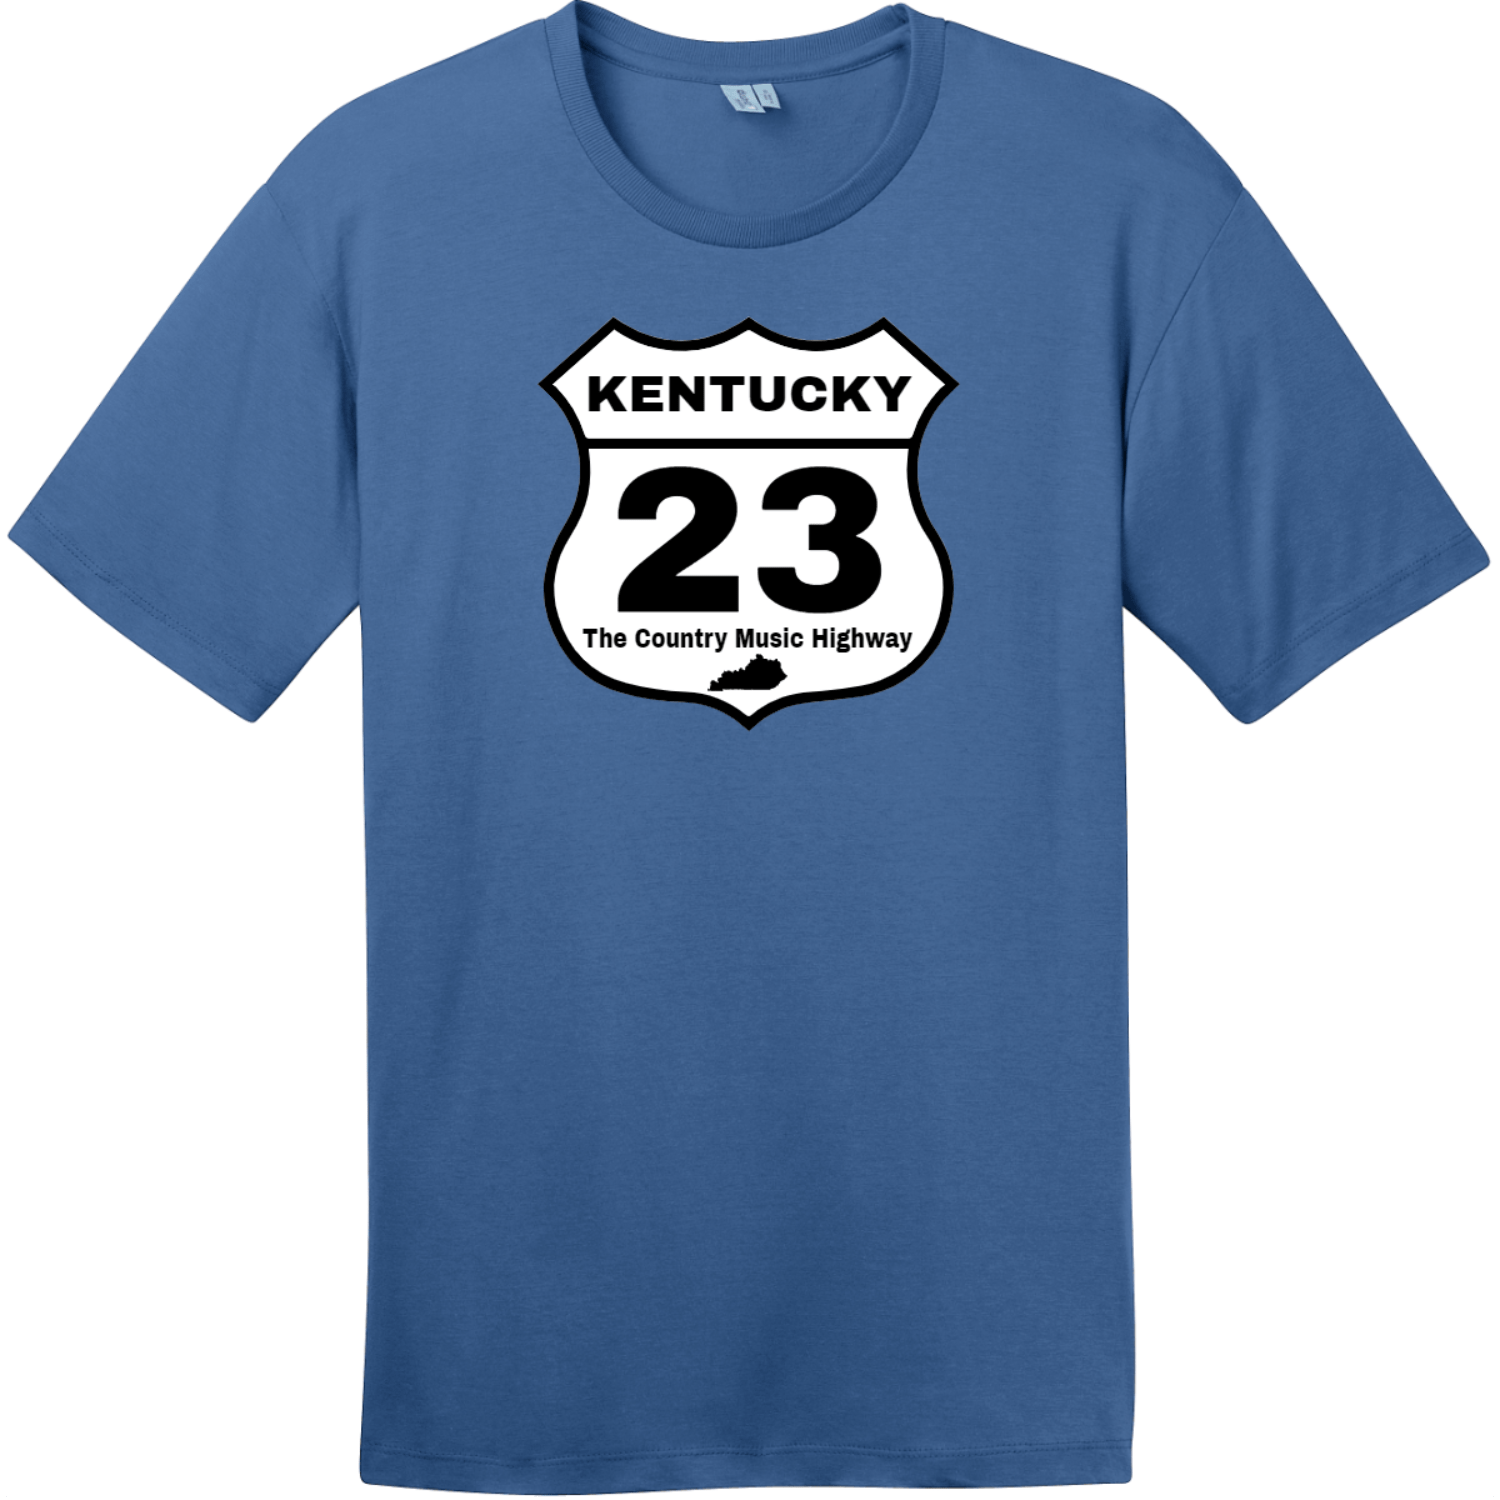 Kentucky 23 Country Music Highway T-Shirt Maritime Blue District Perfect Weight Tee DT104